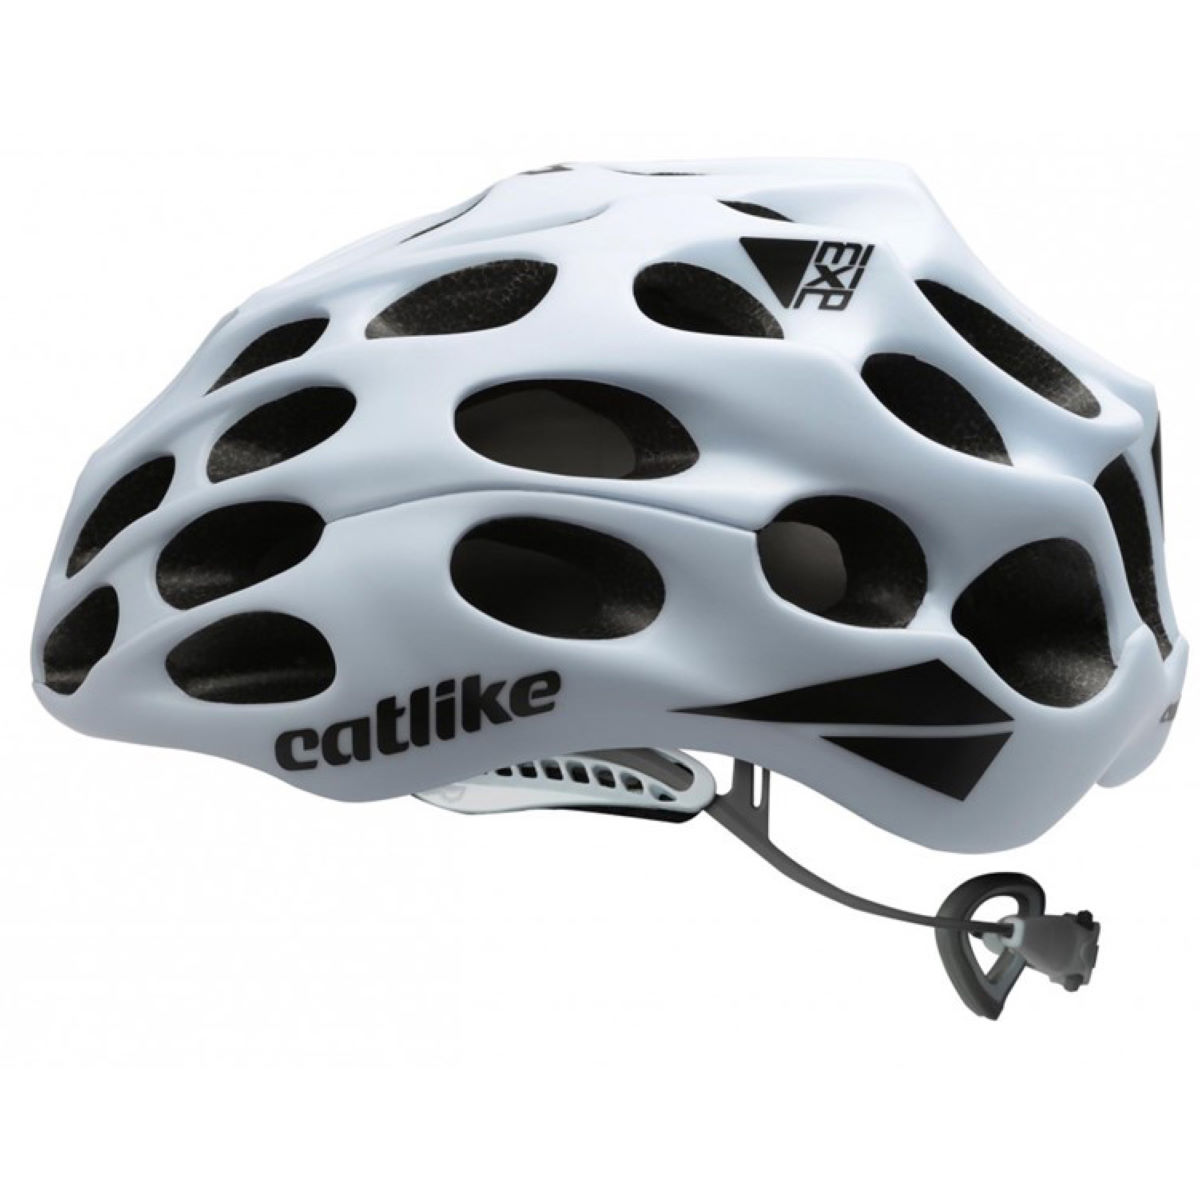 Casque de route Catlike Mixino - S White Matt Casques de route